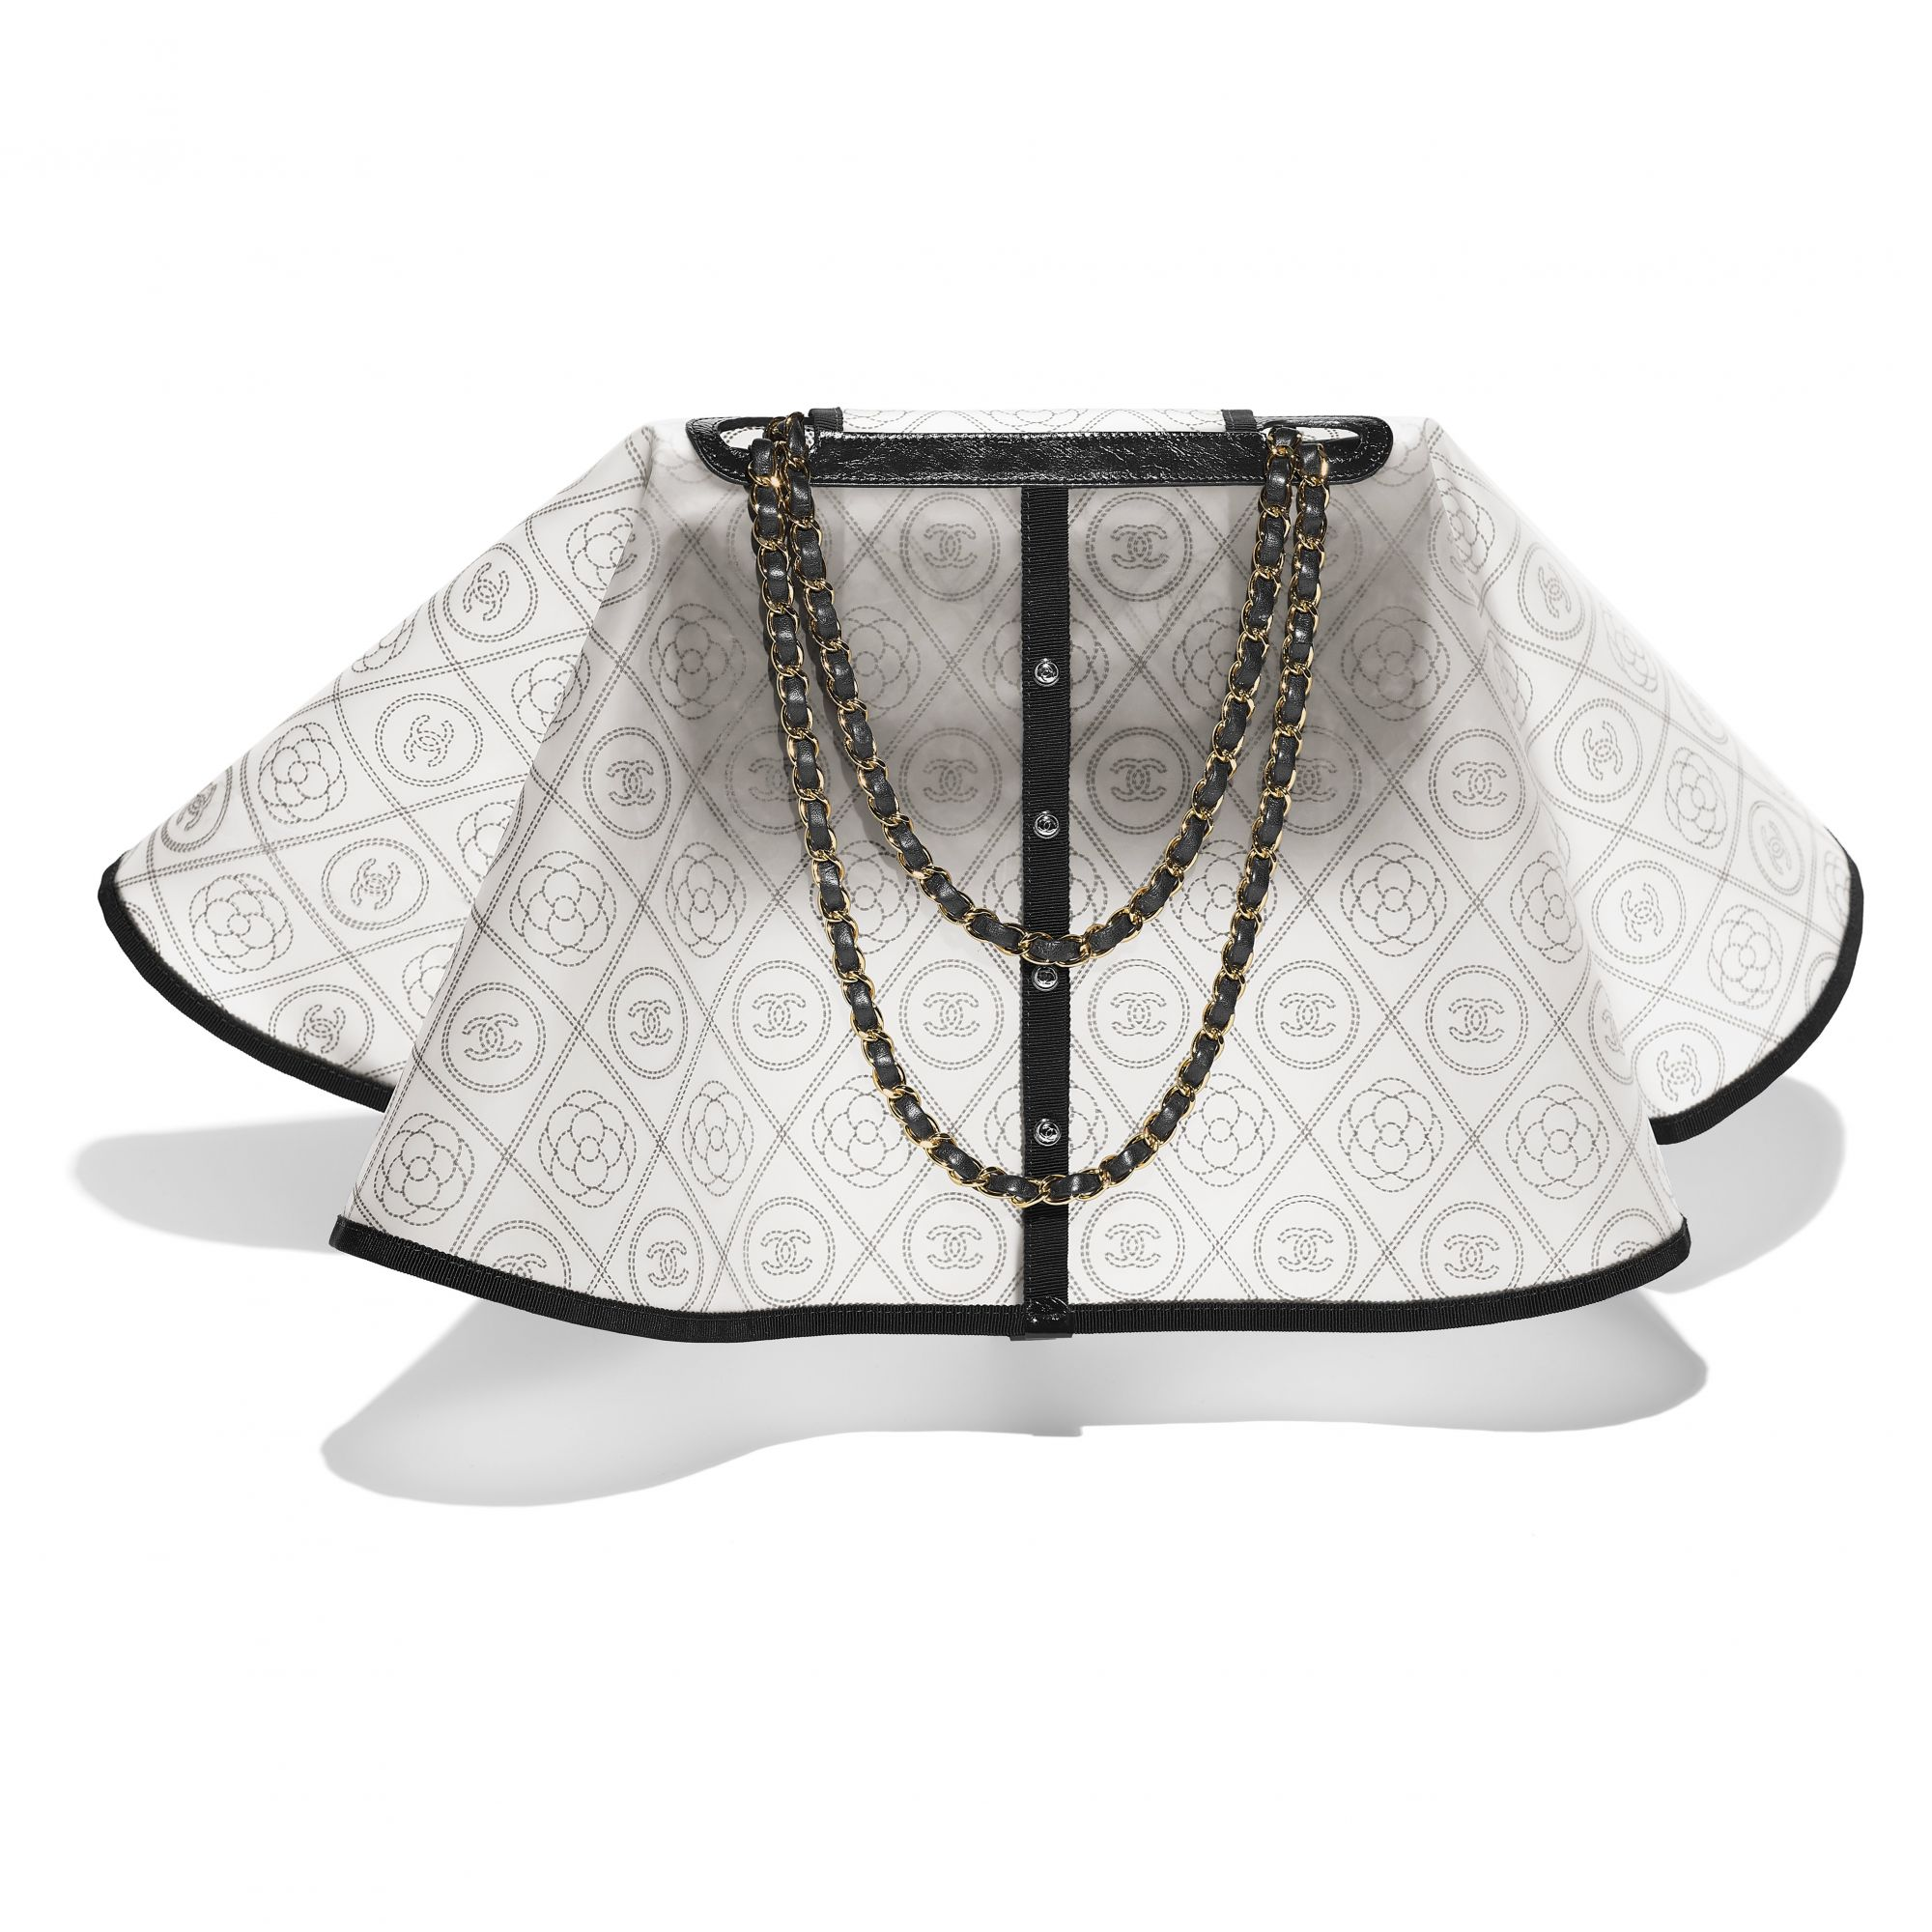 Black and white bag in printed PVC, grosgrain and leather